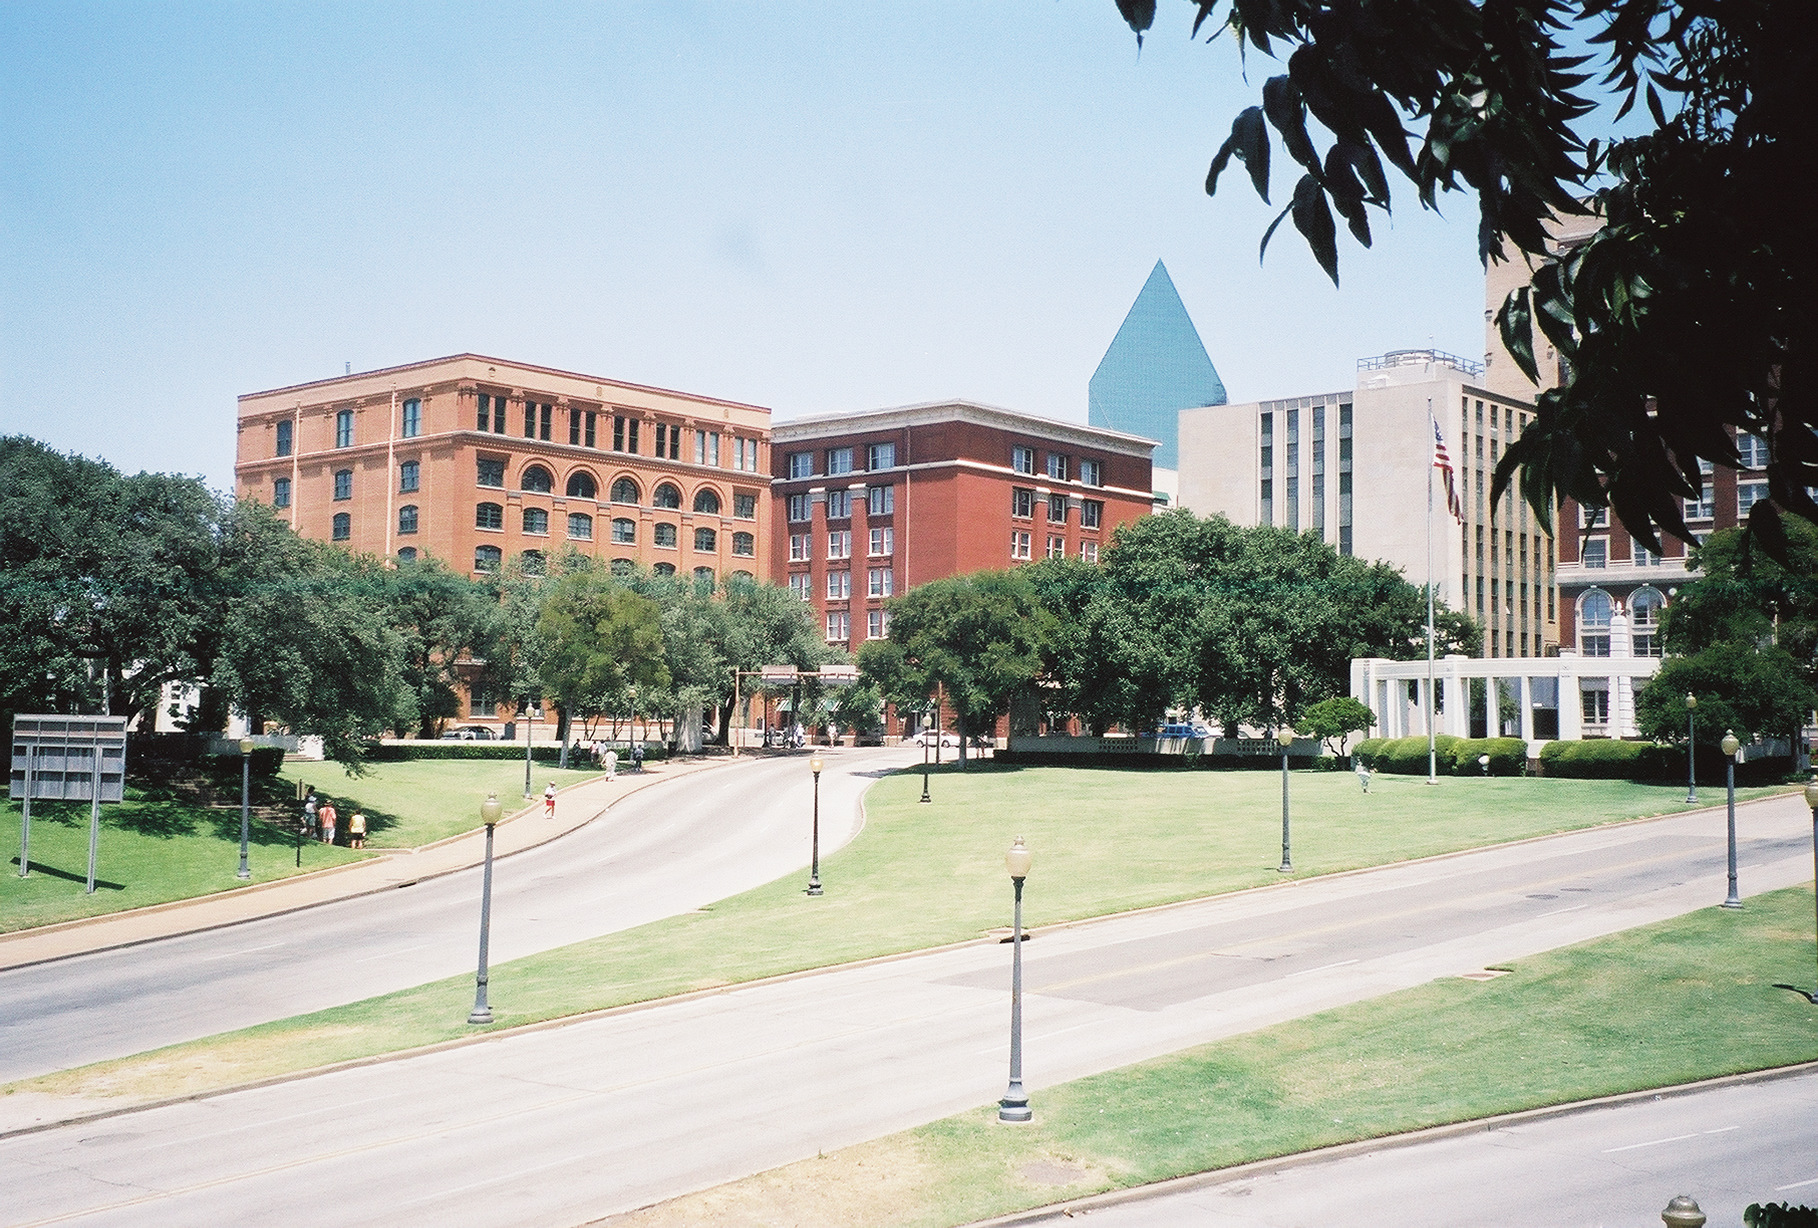 dealey plaza dallas map Dealey Plaza Wikipedia dealey plaza dallas map